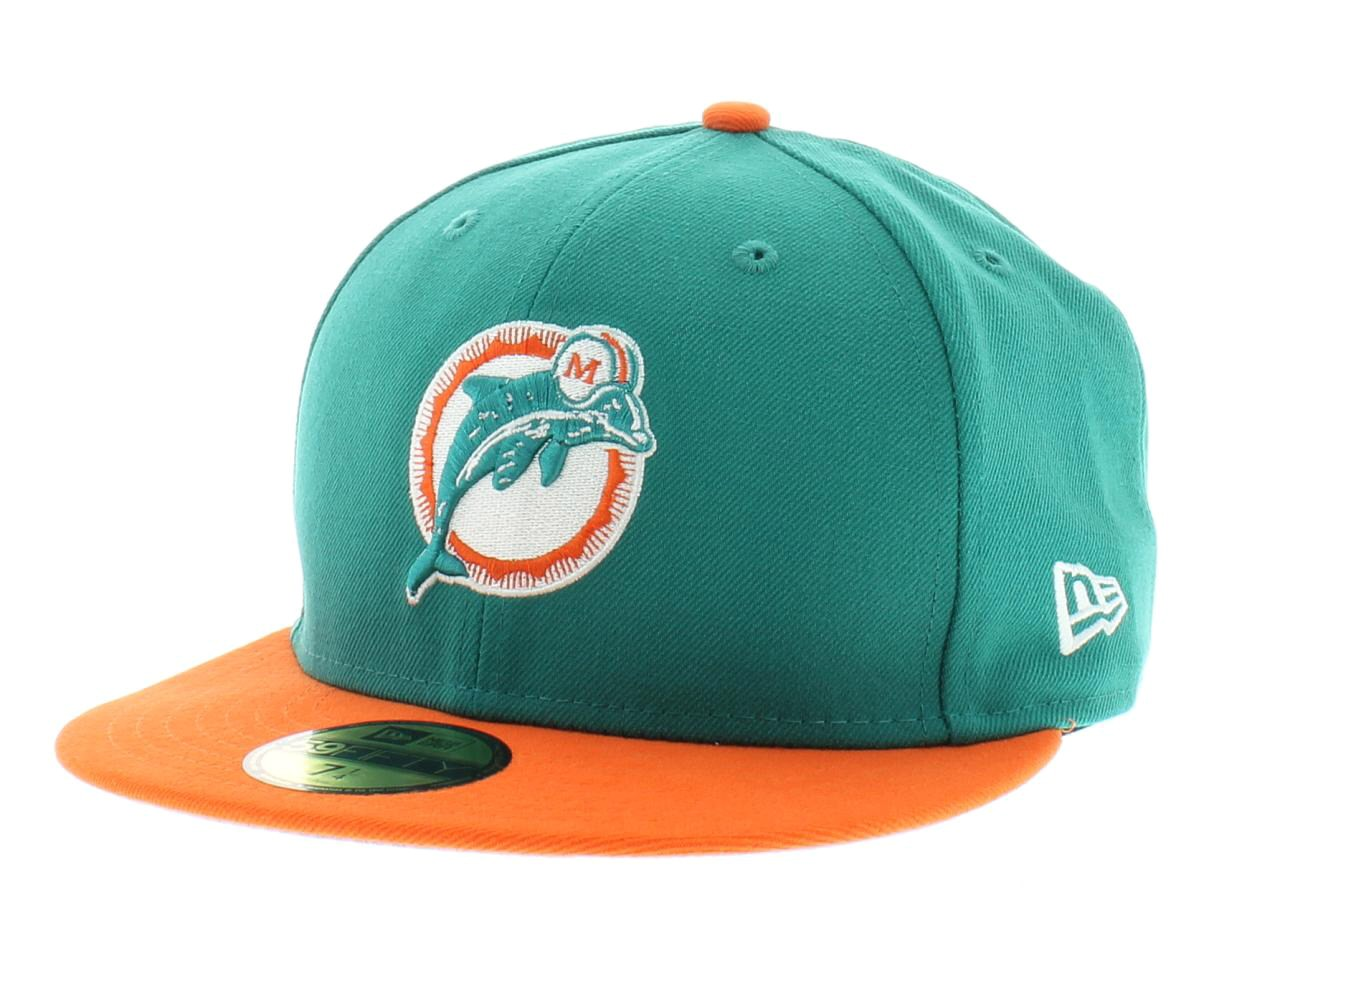 6 miami dolphins nfl team colors the historic basic fitted 59fifty 5950 new era